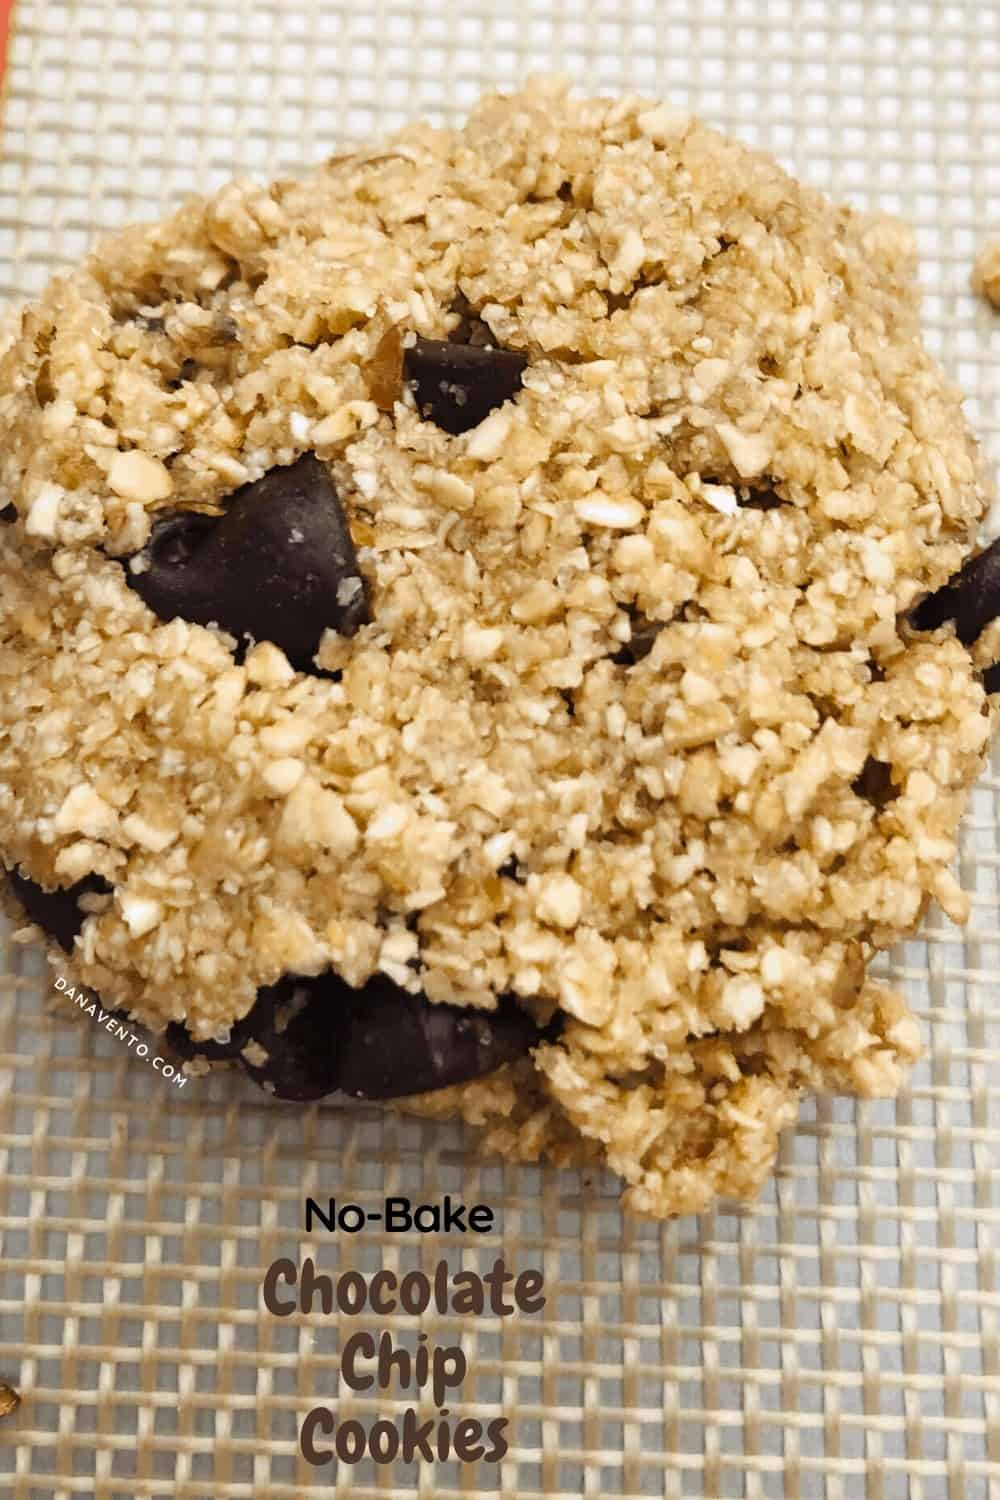 1 good looking no-bake chocolate chip cookie